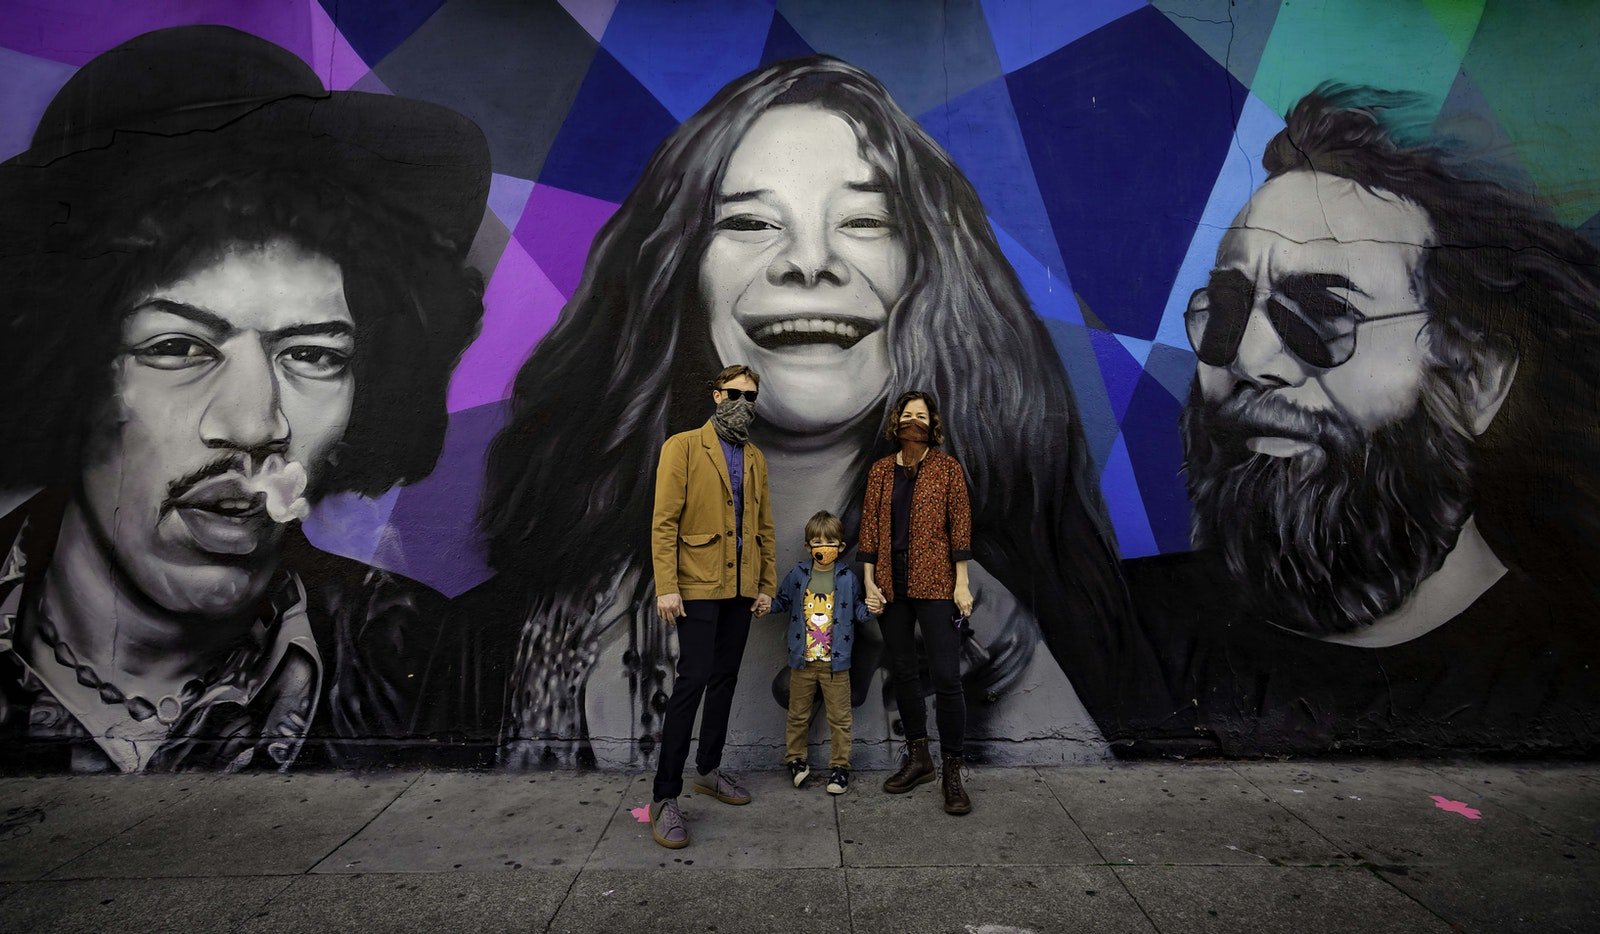 Jessica Valeri, Jonathan Vinocourt and son in front of Mural